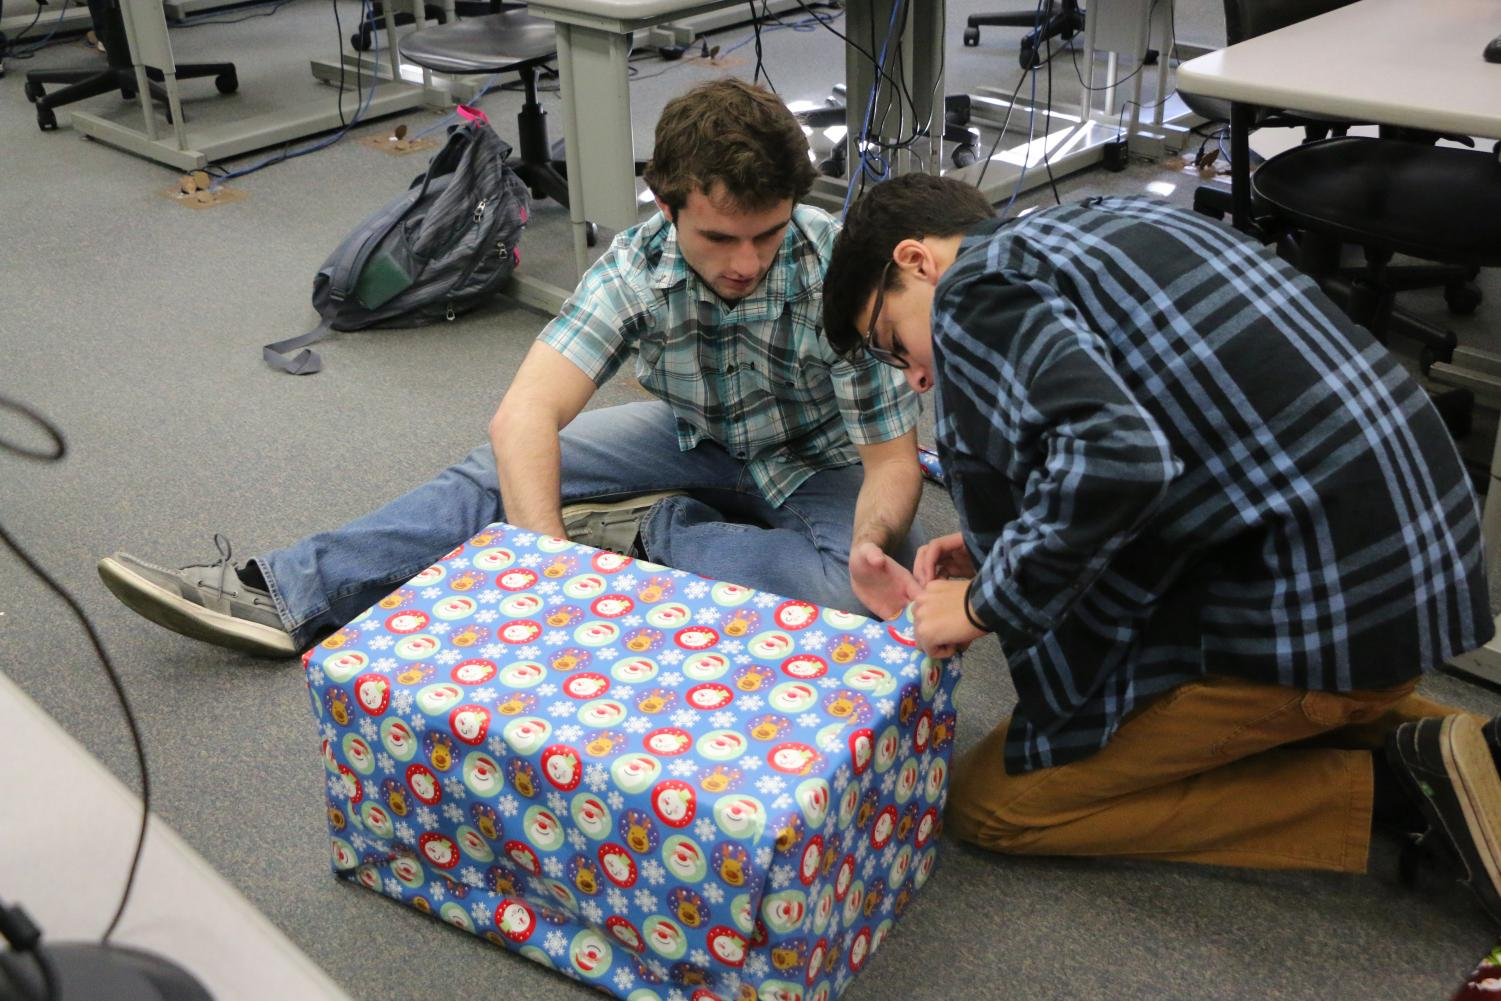 Students of Dr. Kellum's WISH class, Daniel Ritz and Gregory Yonan, wrap a present they bought for their WISH family.